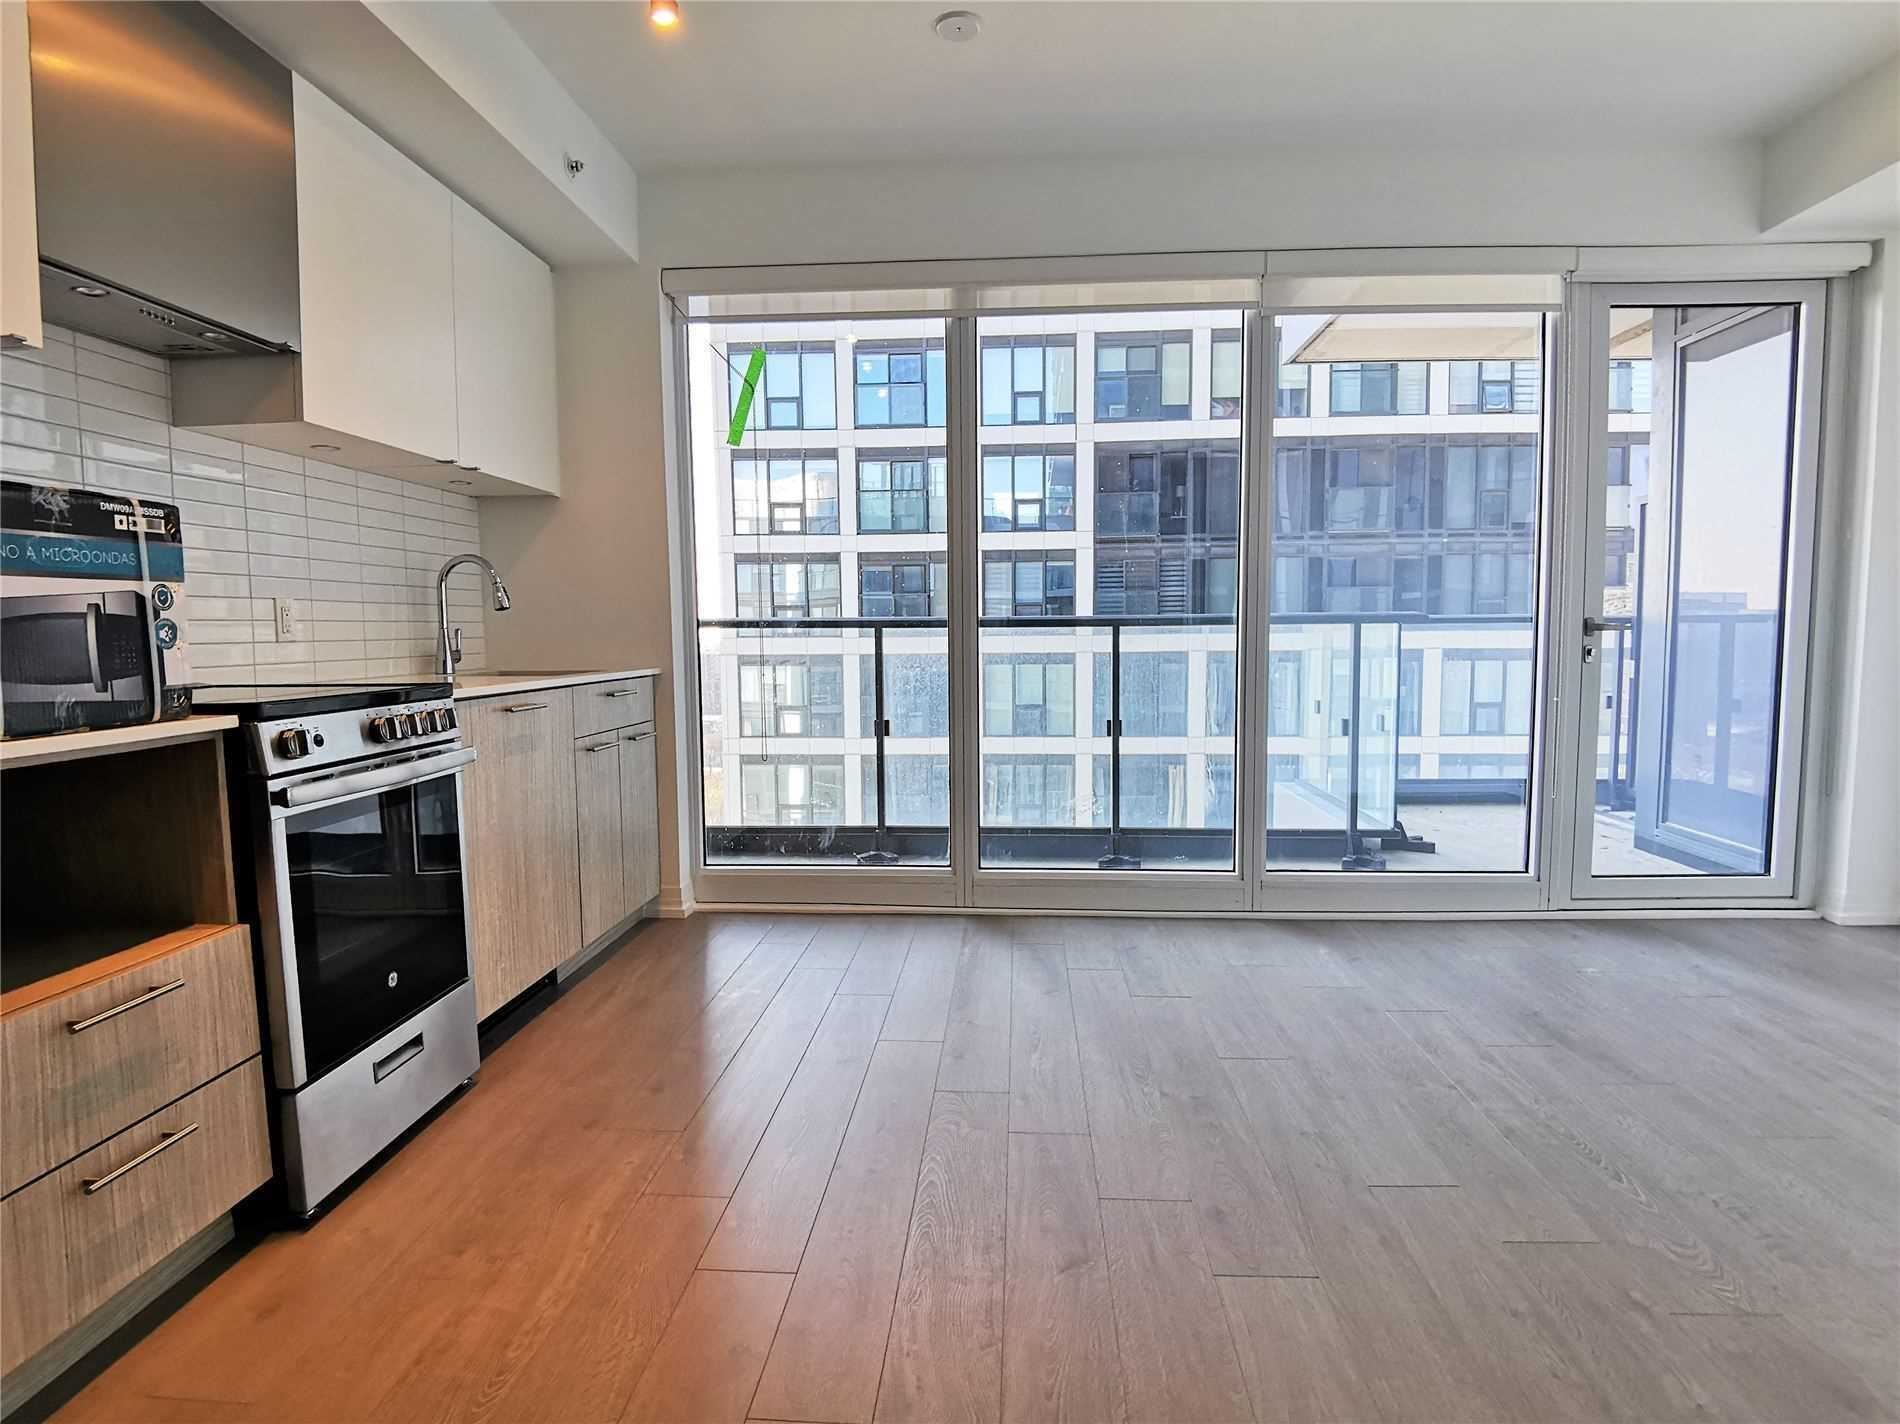 Photo of 251 Jarvis St #1816, Toronto, ON M5A 4R6 (MLS # C5326181)